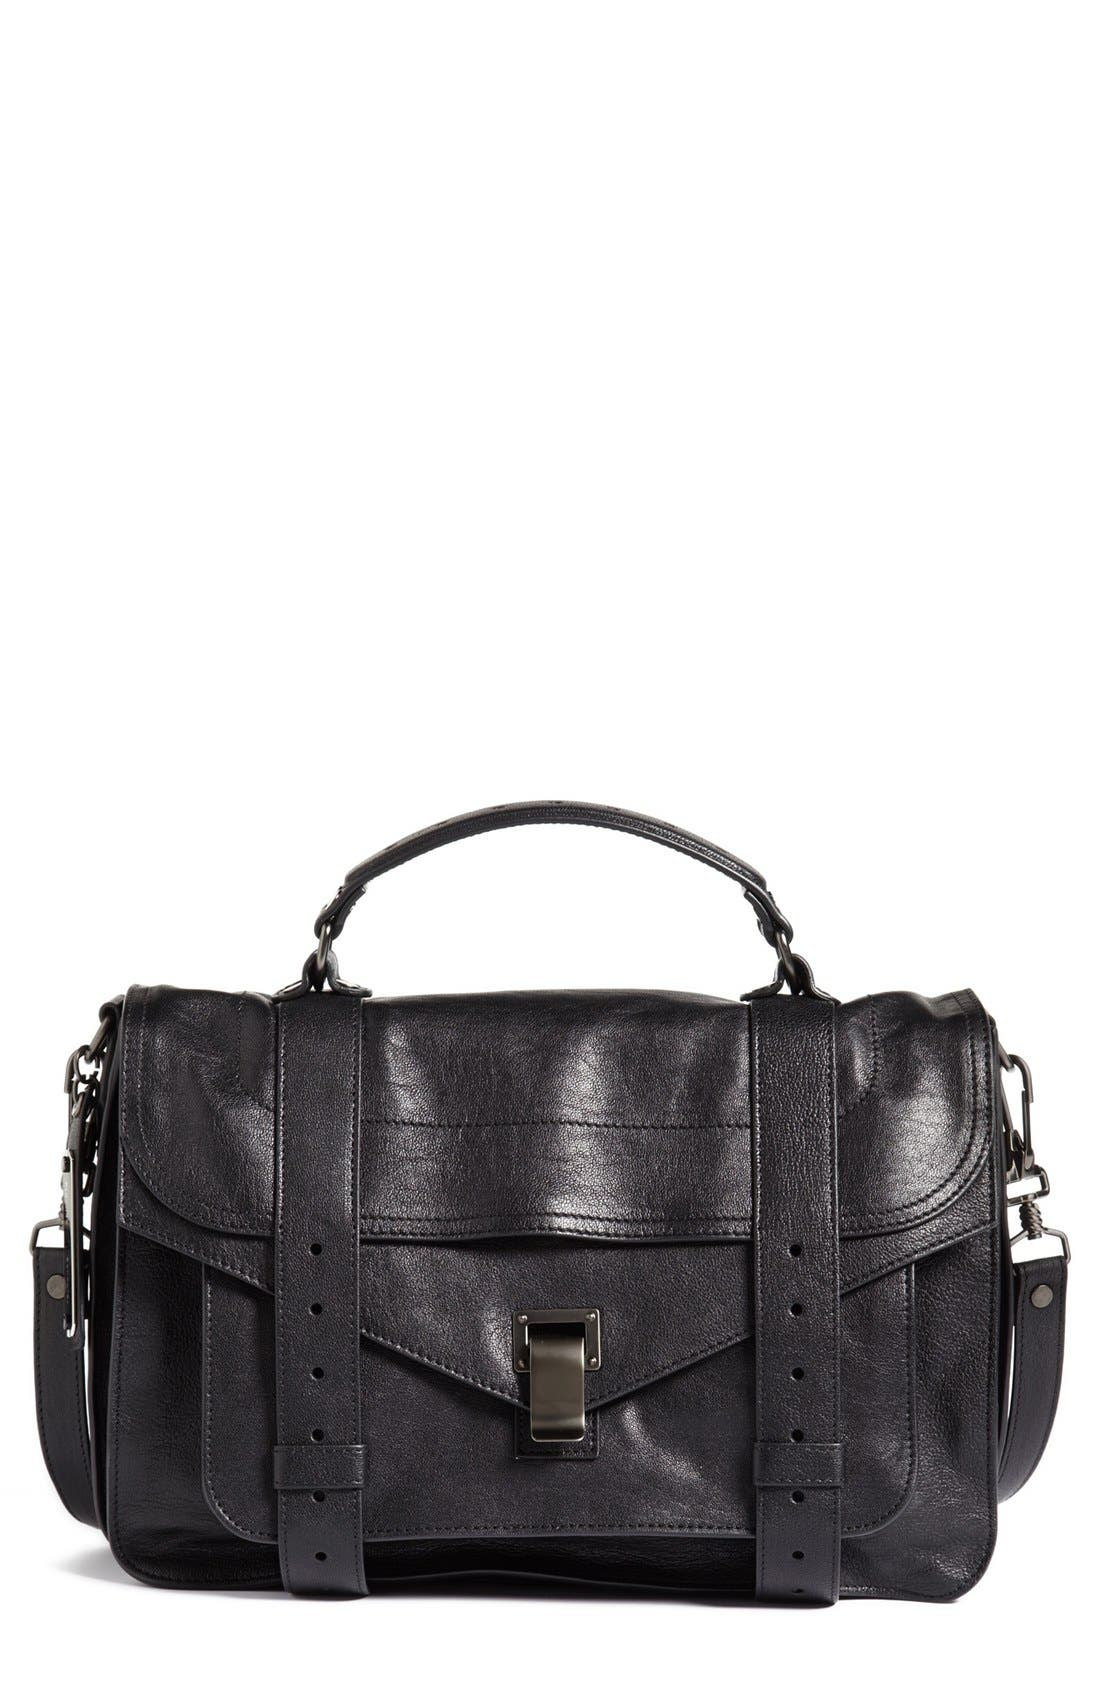 Proenza Schouler 'Medium PS1' Satchel